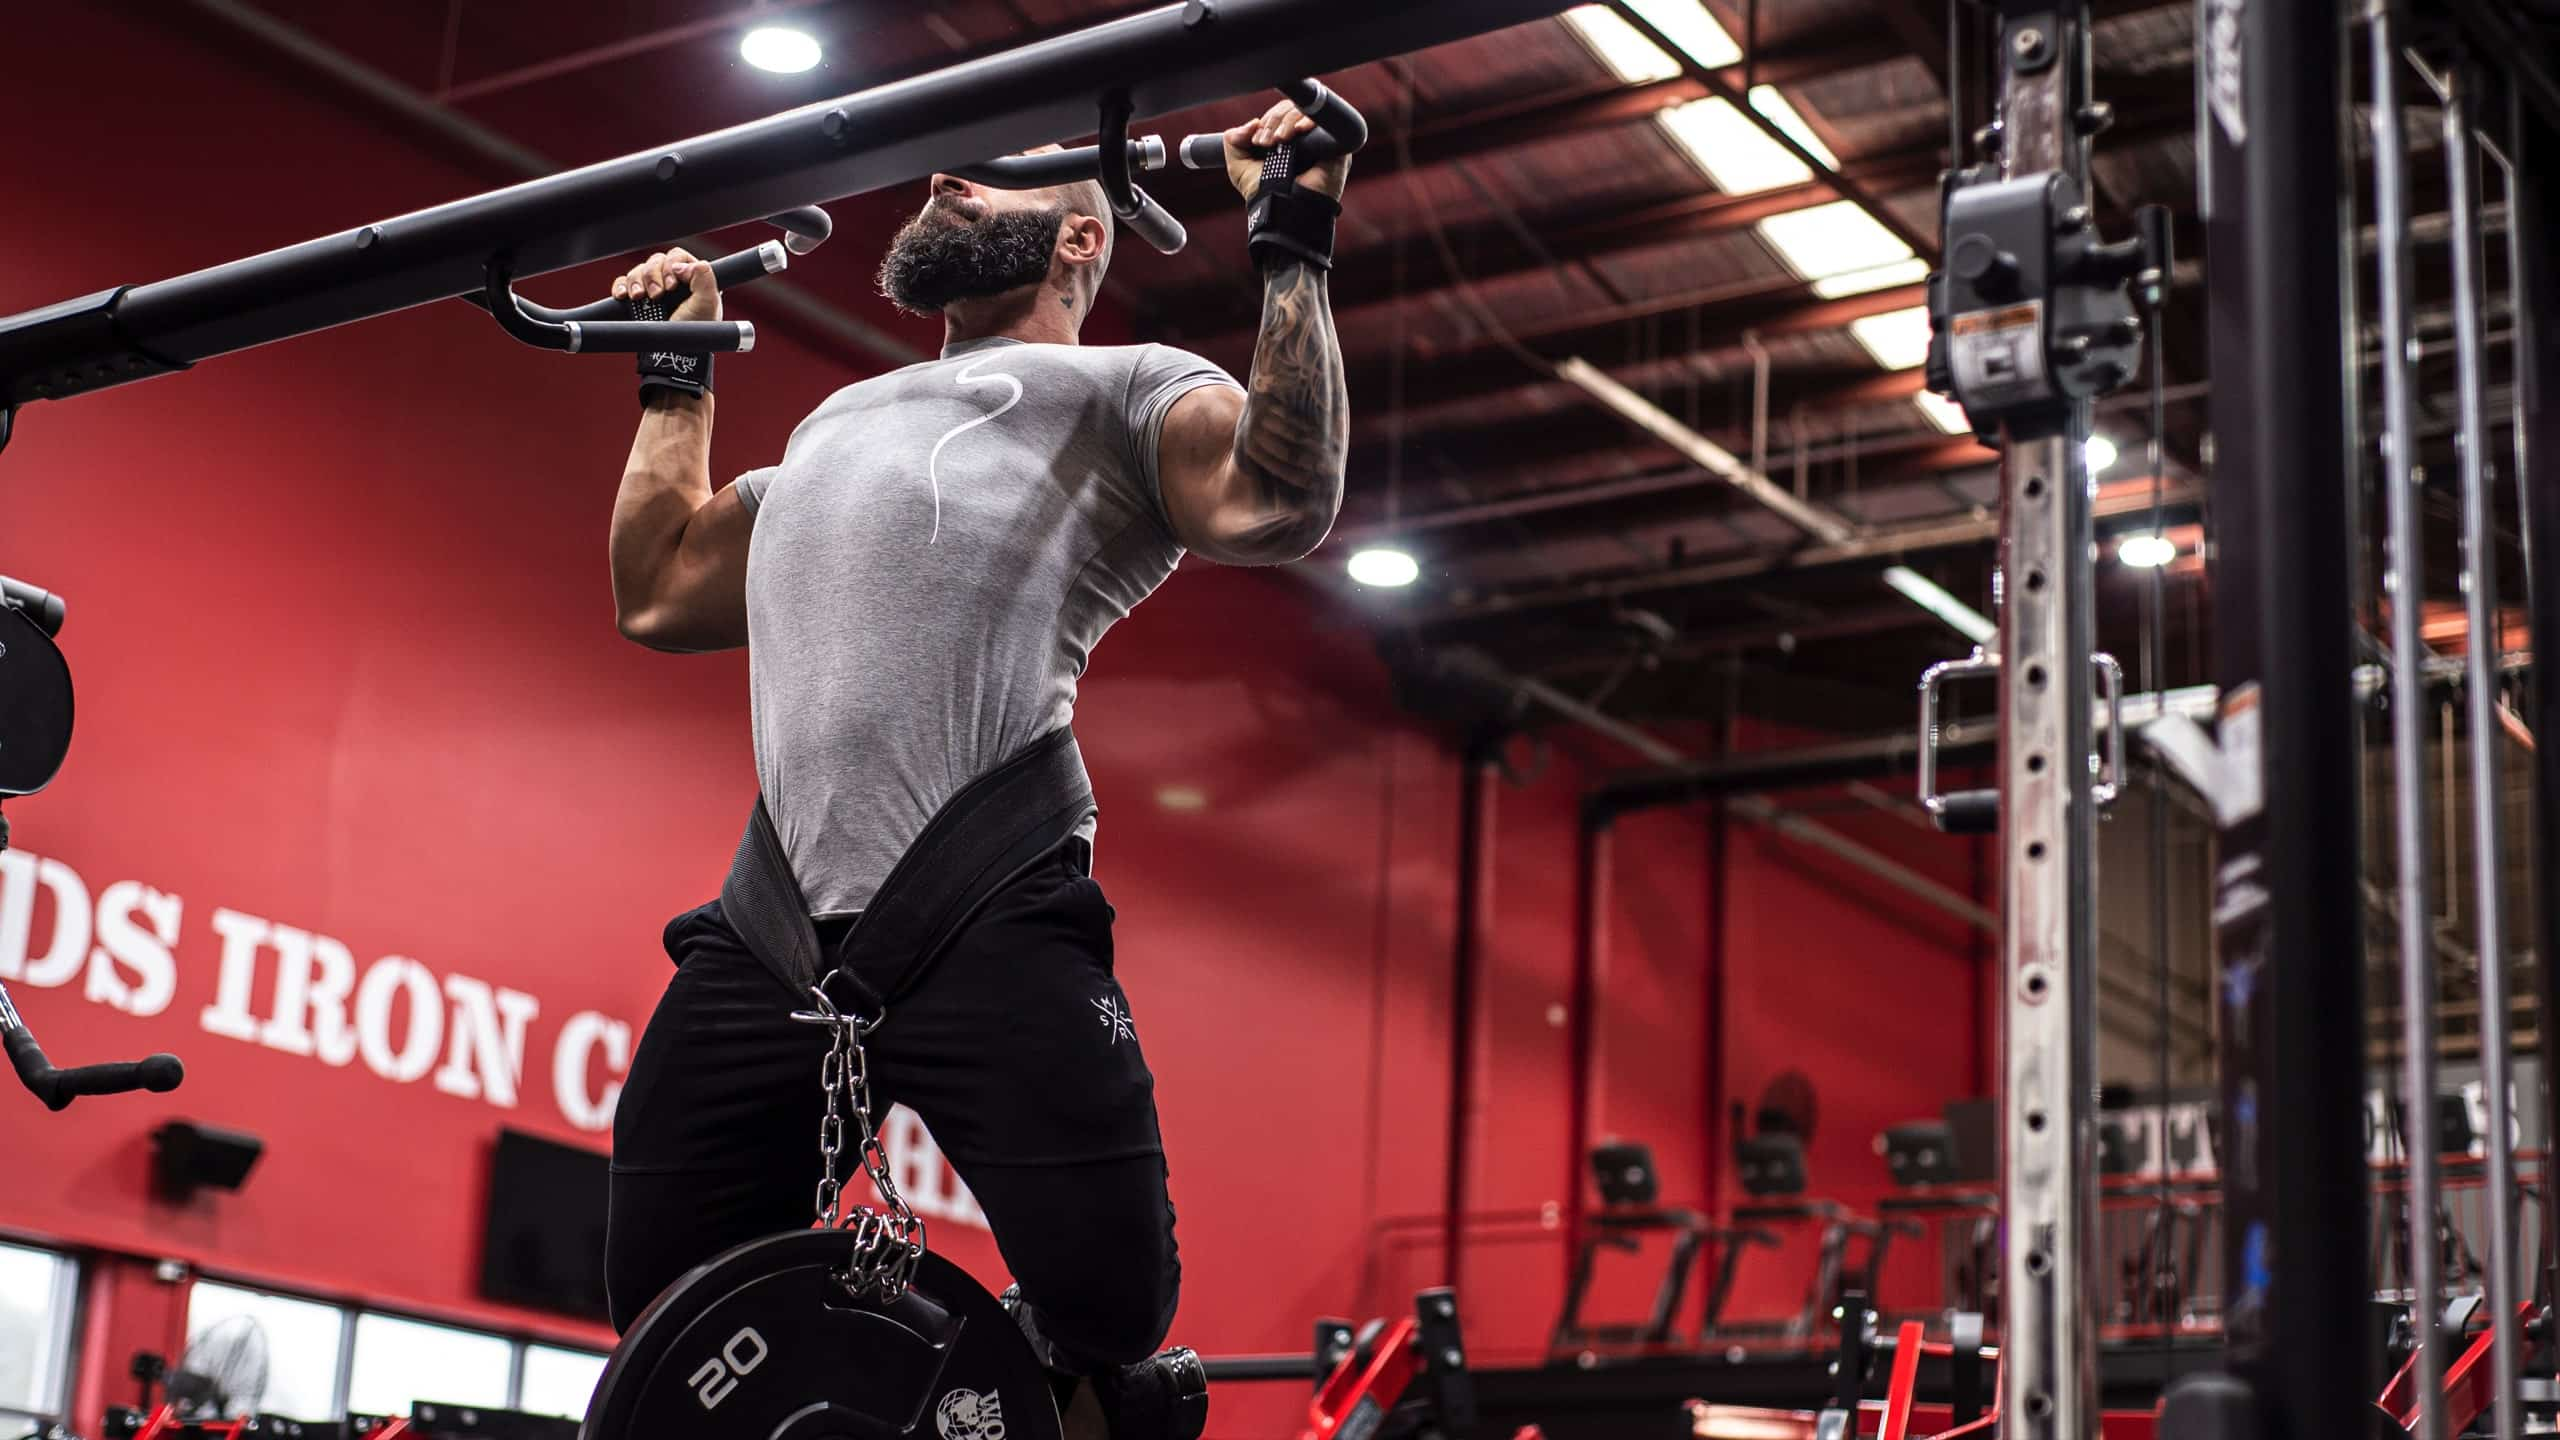 Man doing dips at the gym using rappd dip belt